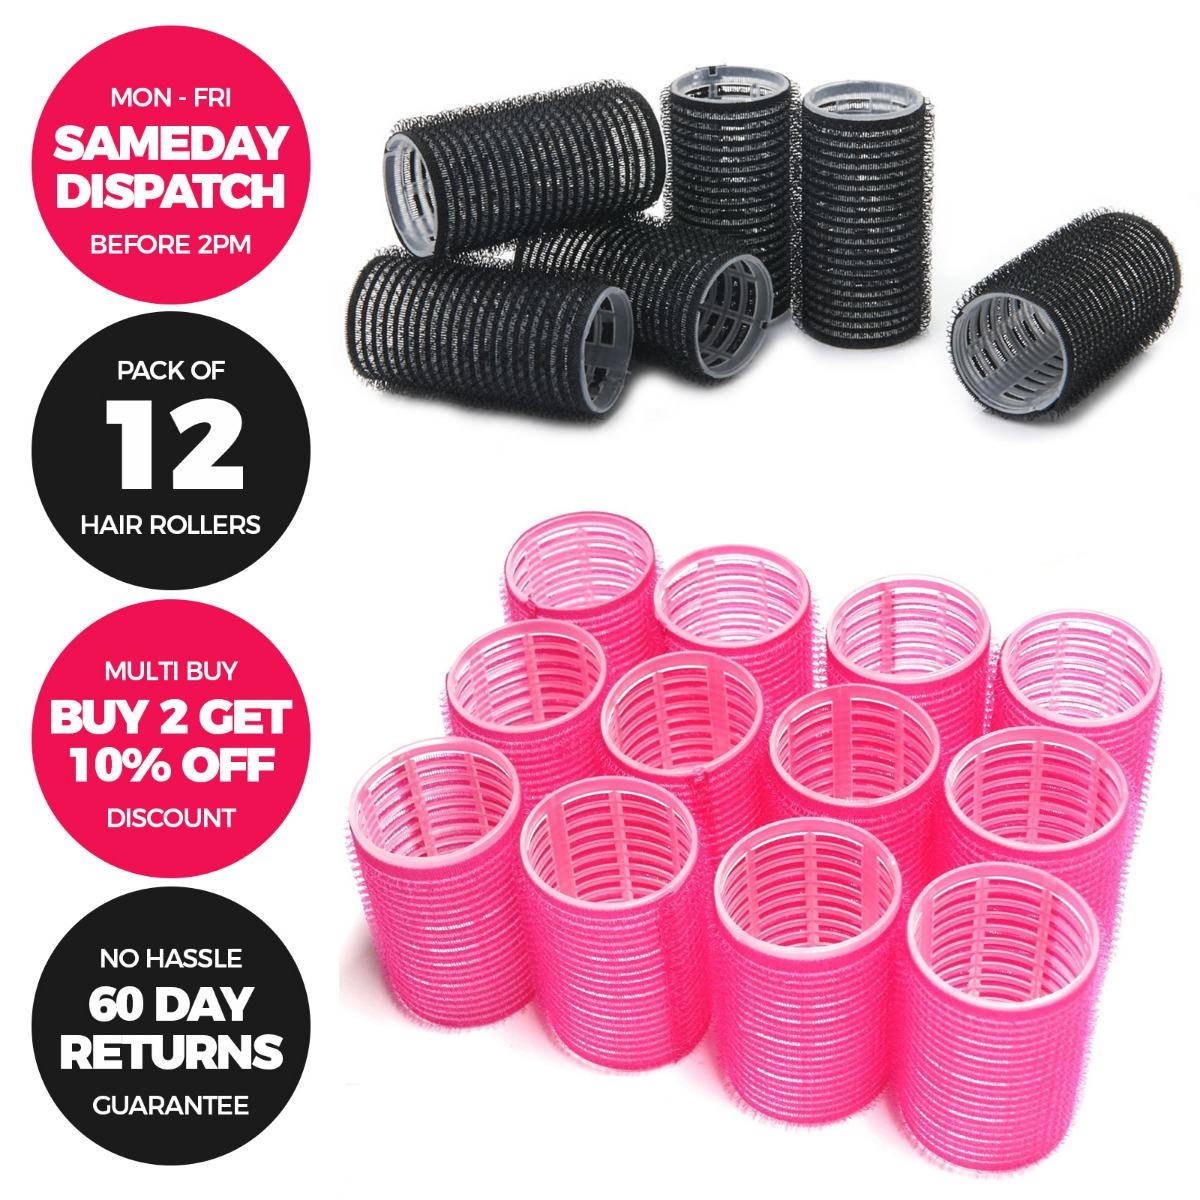 Details about 10 PACK Plastic Hair Rollers Curlers Pro Self Grip - Small  Medium - Pink & Black